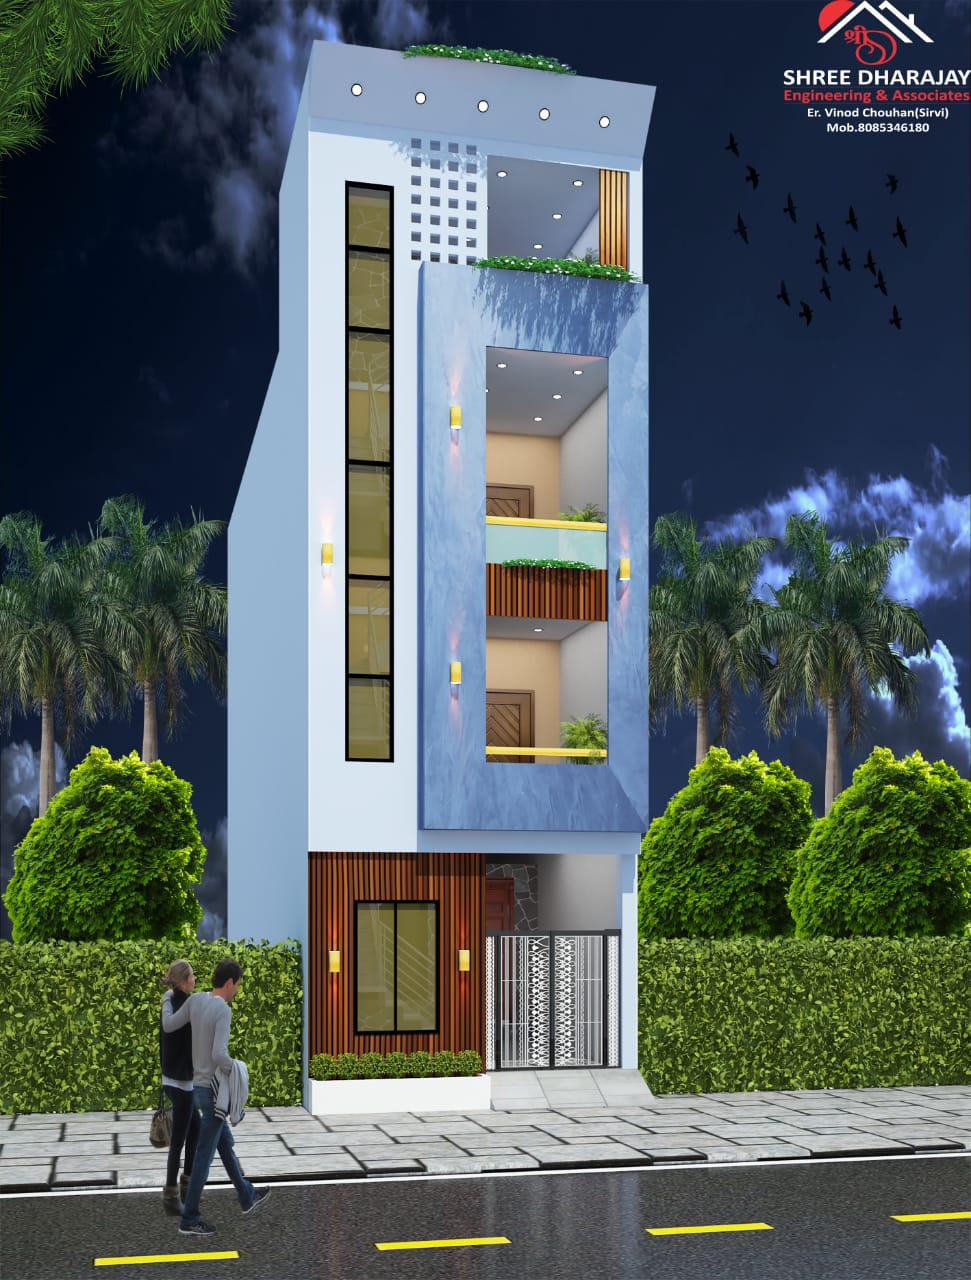 design-centre-institute-of-crativity-and-innovation-student-work-civil-and-interior-deign-house-design-by-shree-dharajay